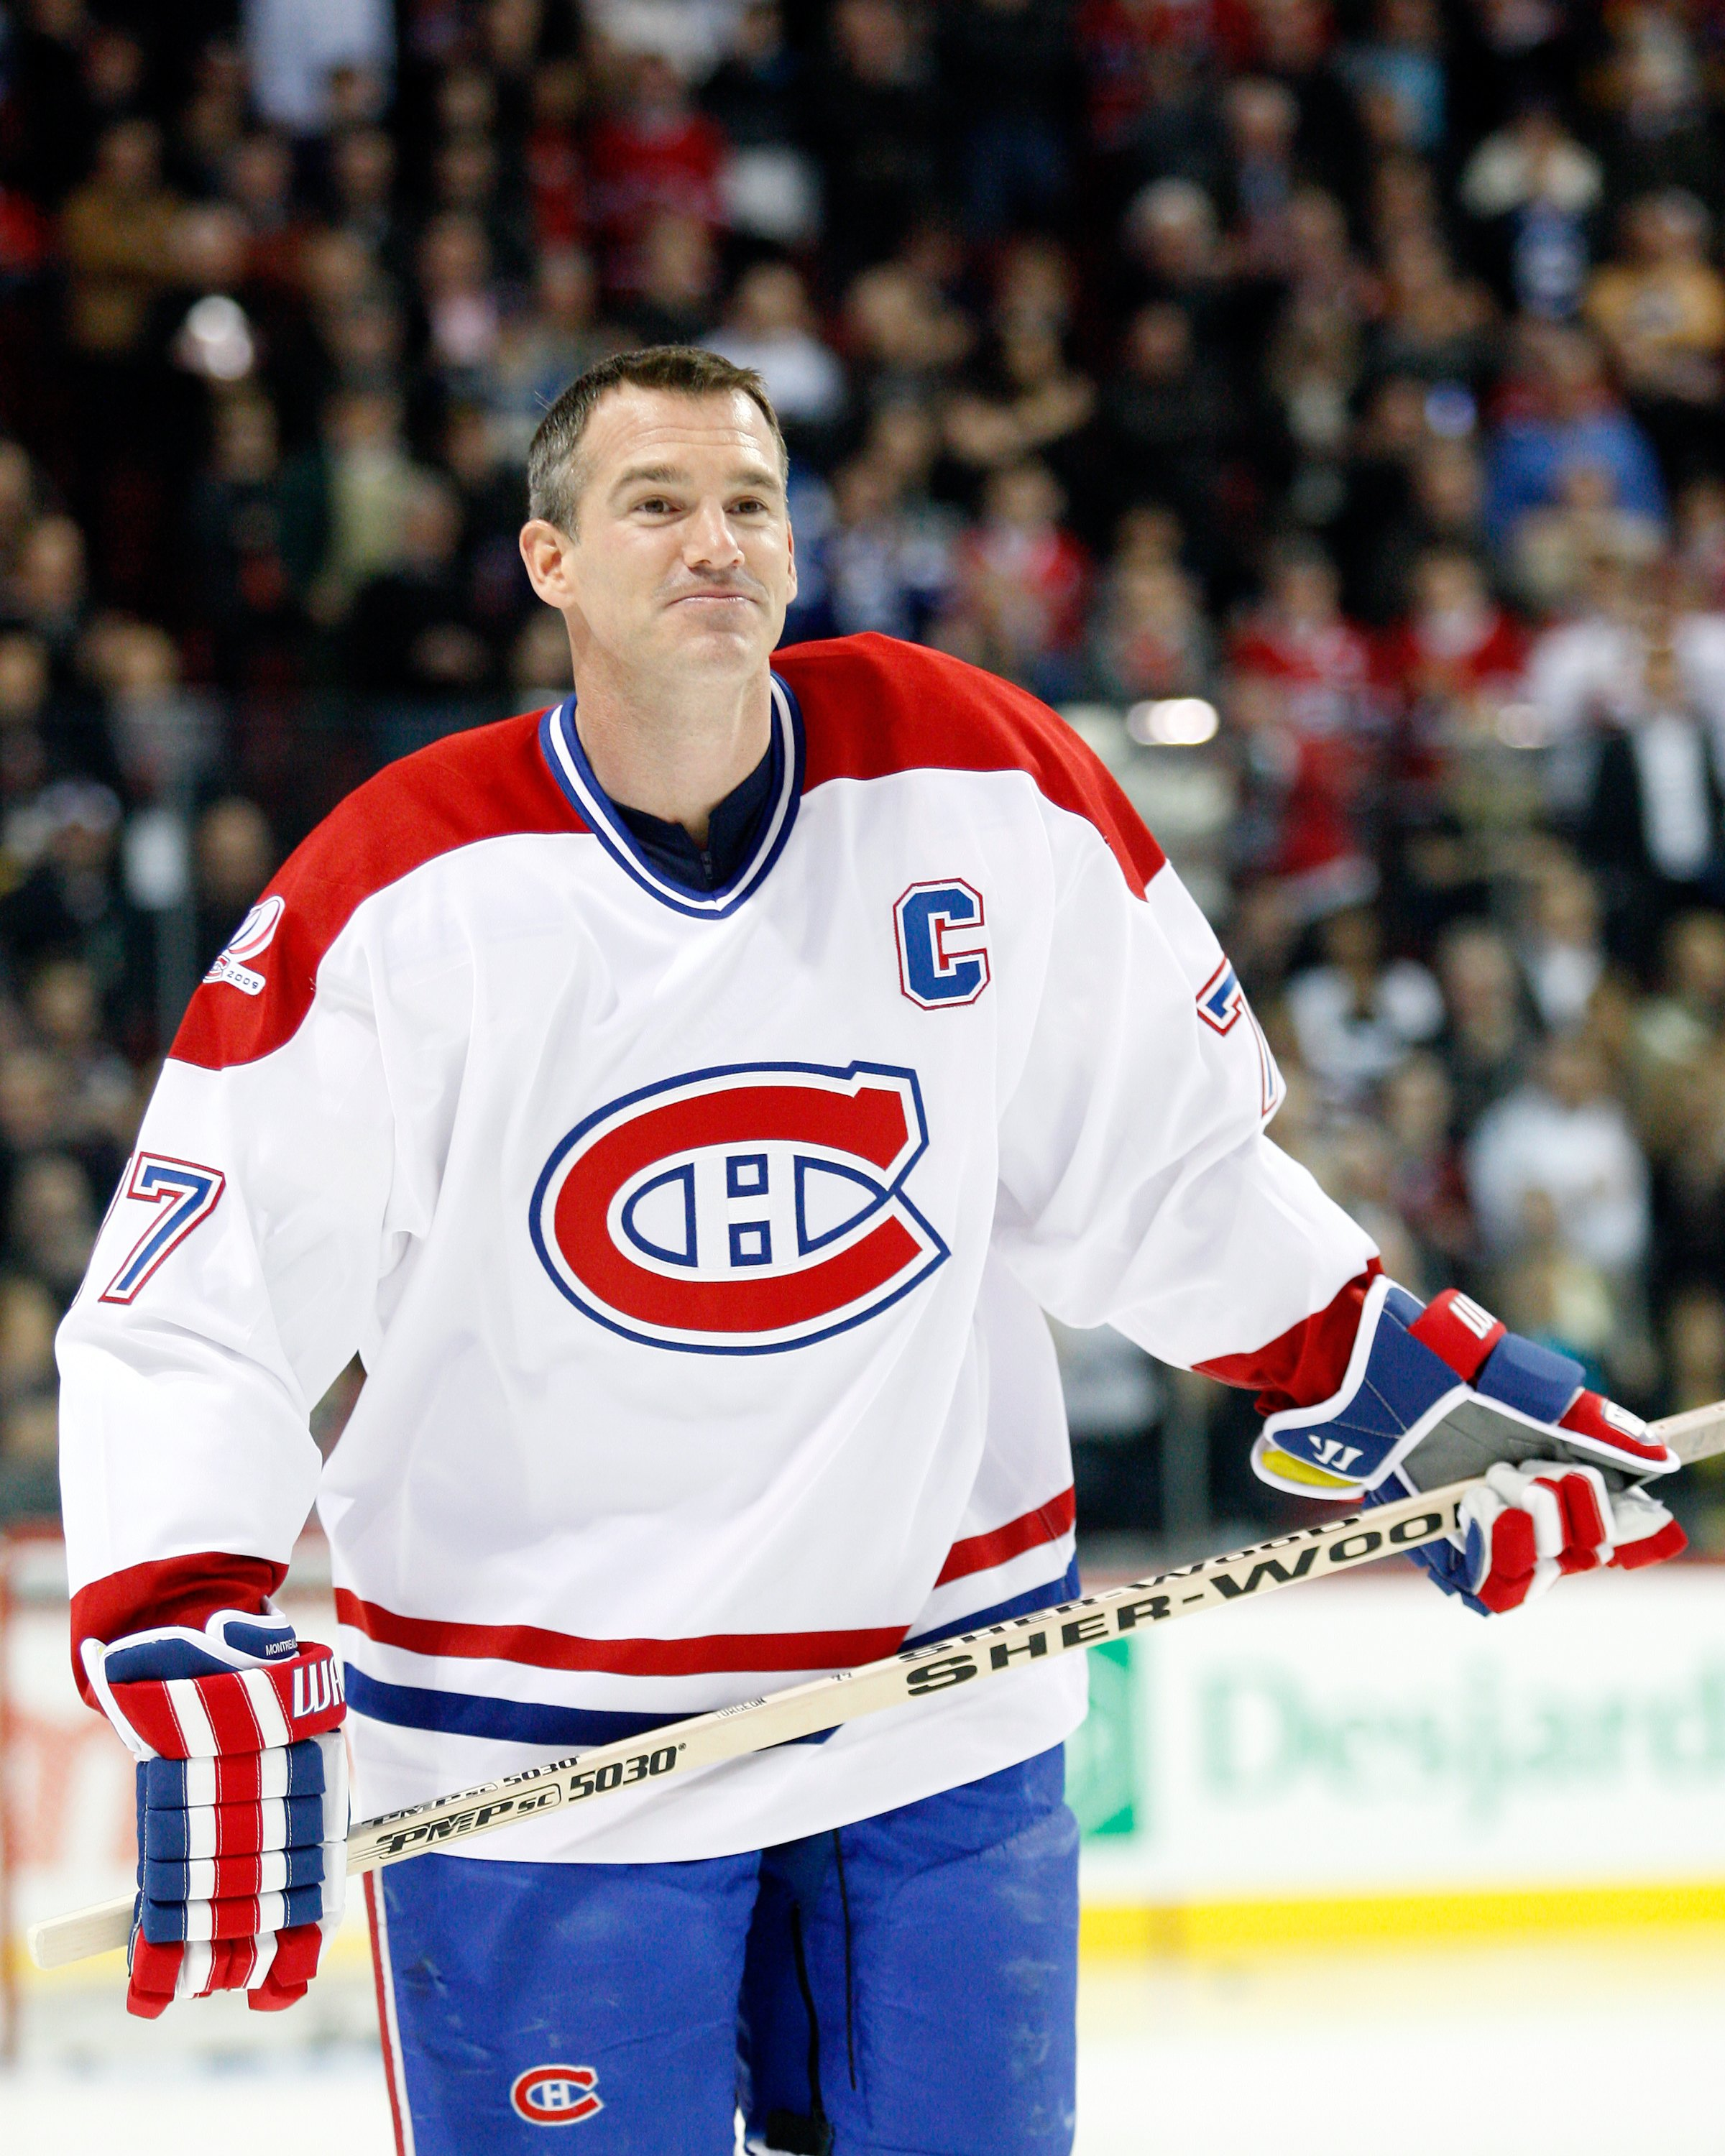 iMONTREAL- DECEMBER 4:  Former Montreal Canadien Pierre Turgeon skates during the Centennial Celebration ceremonies prior to the NHL game between the Montreal Canadiens and Boston Bruins on December 4, 2009 at the Bell Centre in Montreal, Quebec, Canada.